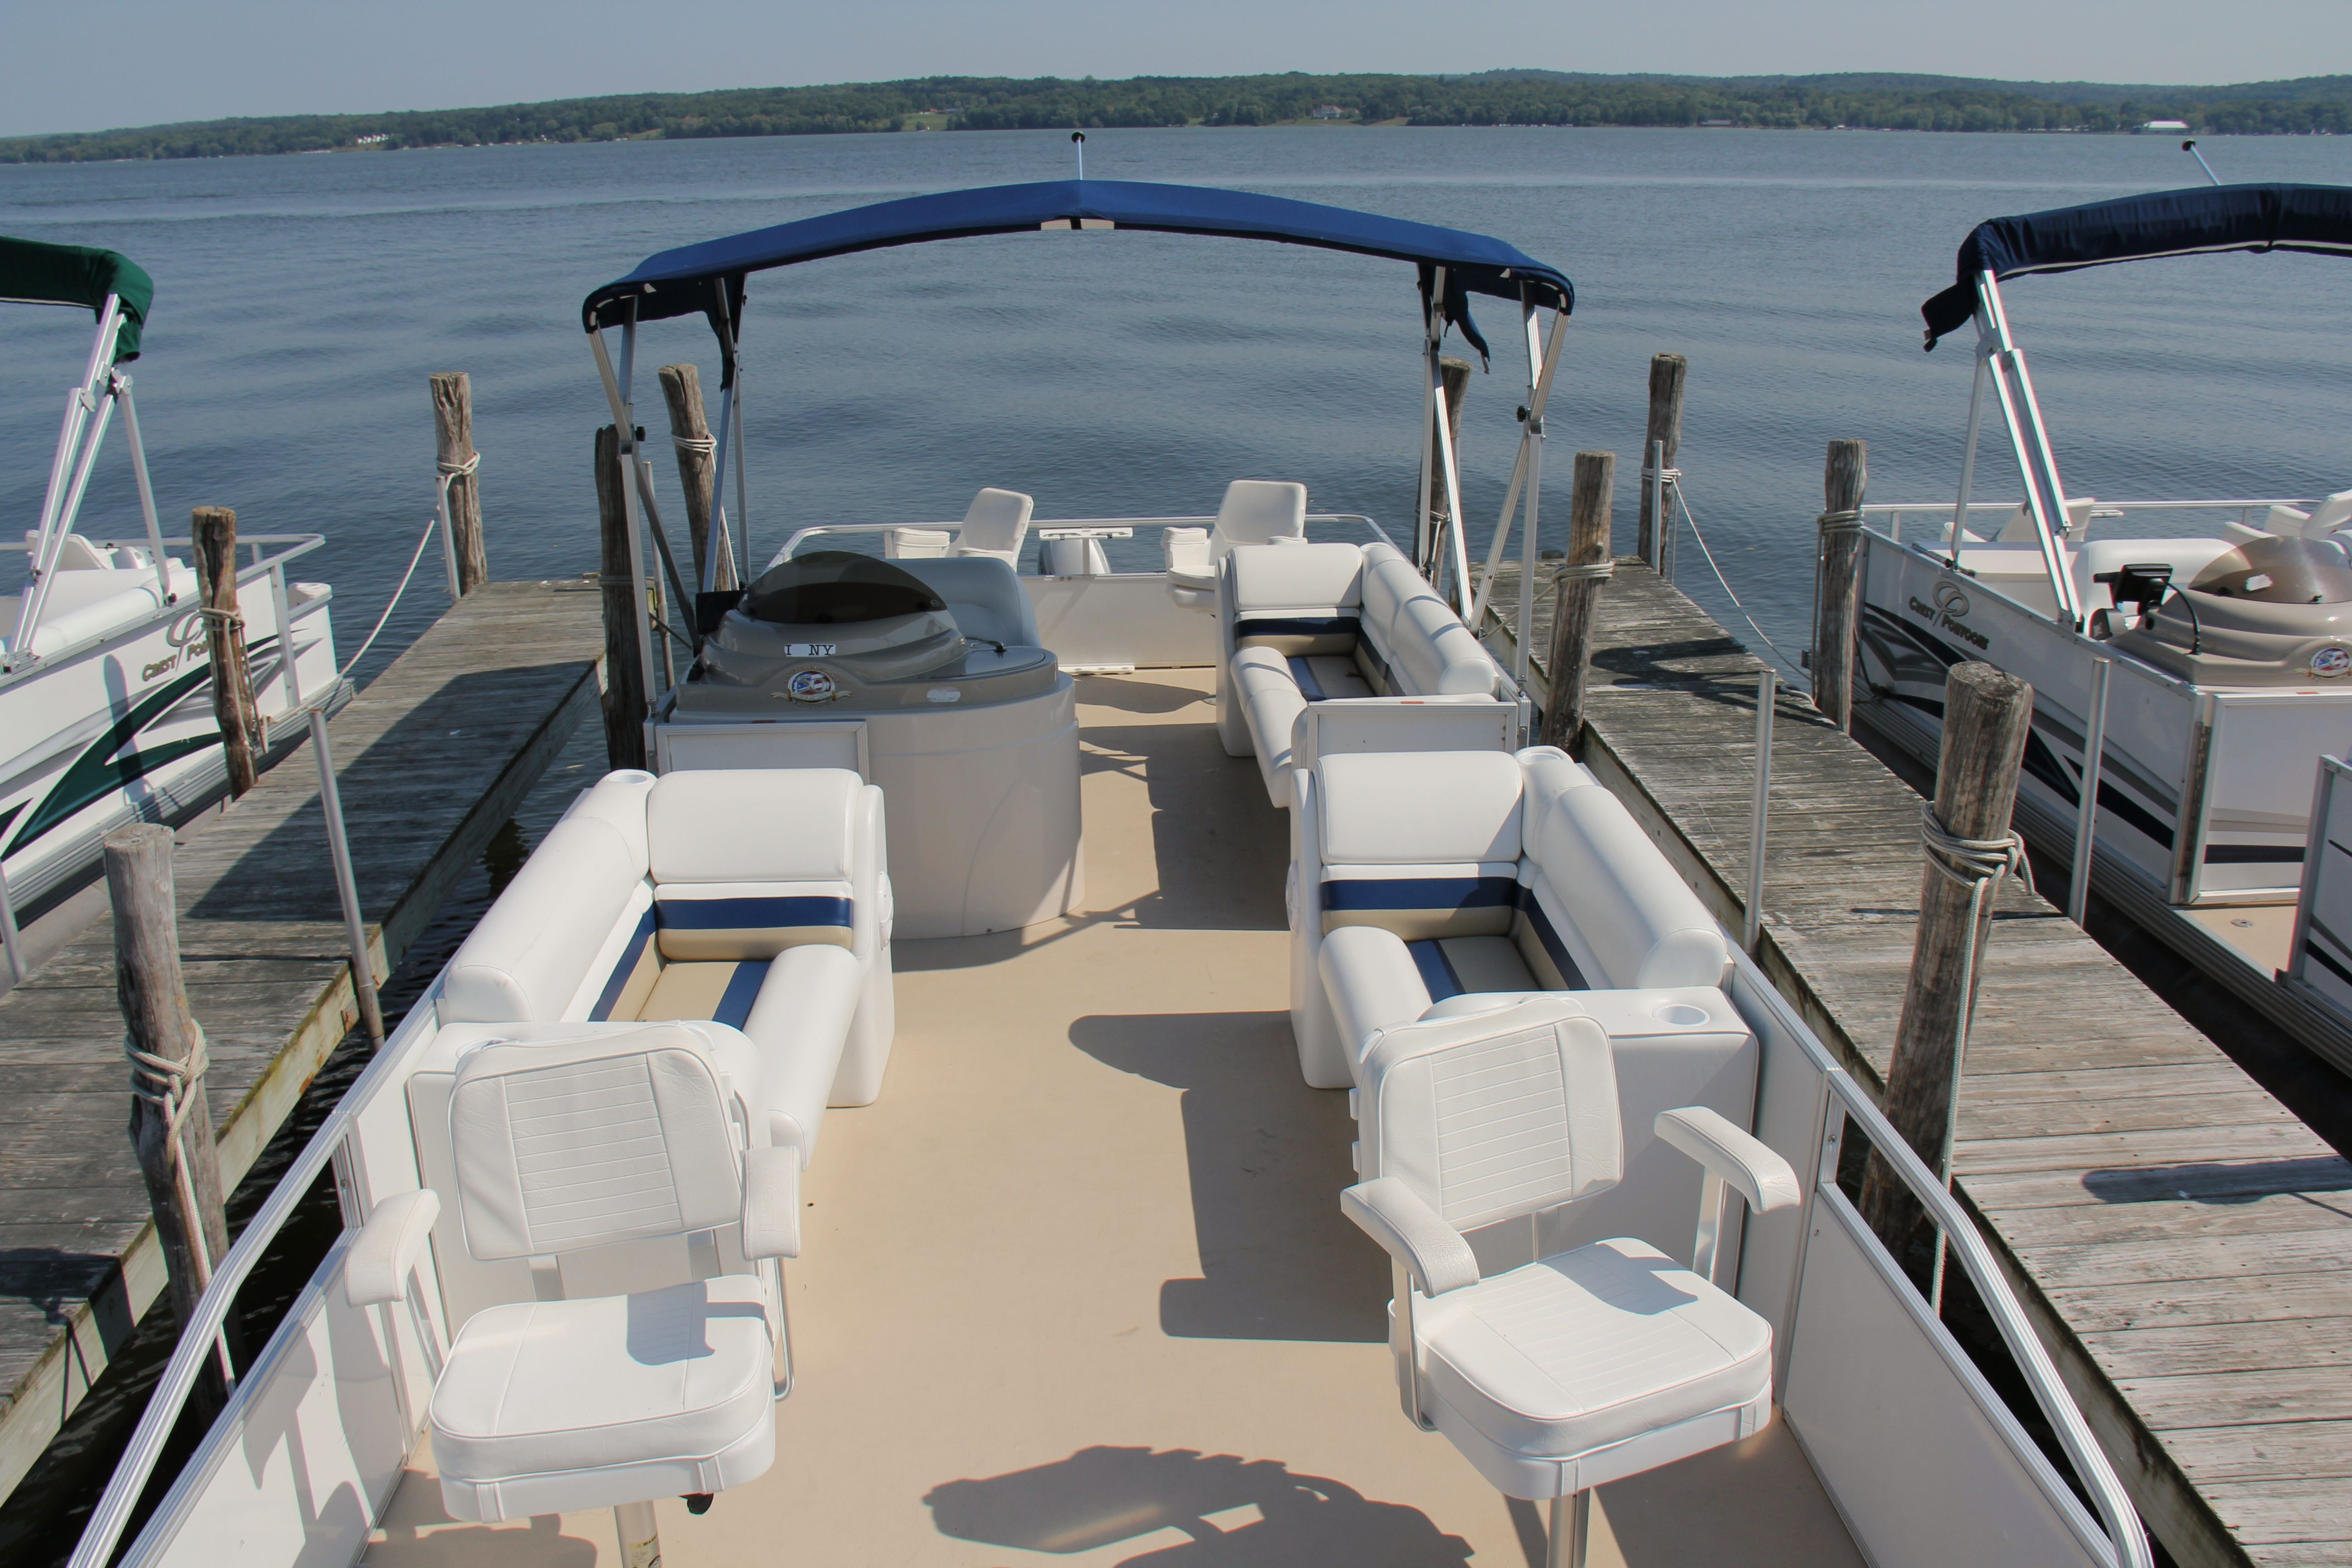 25 ft fishermen pontoon boat rentals with new seats in